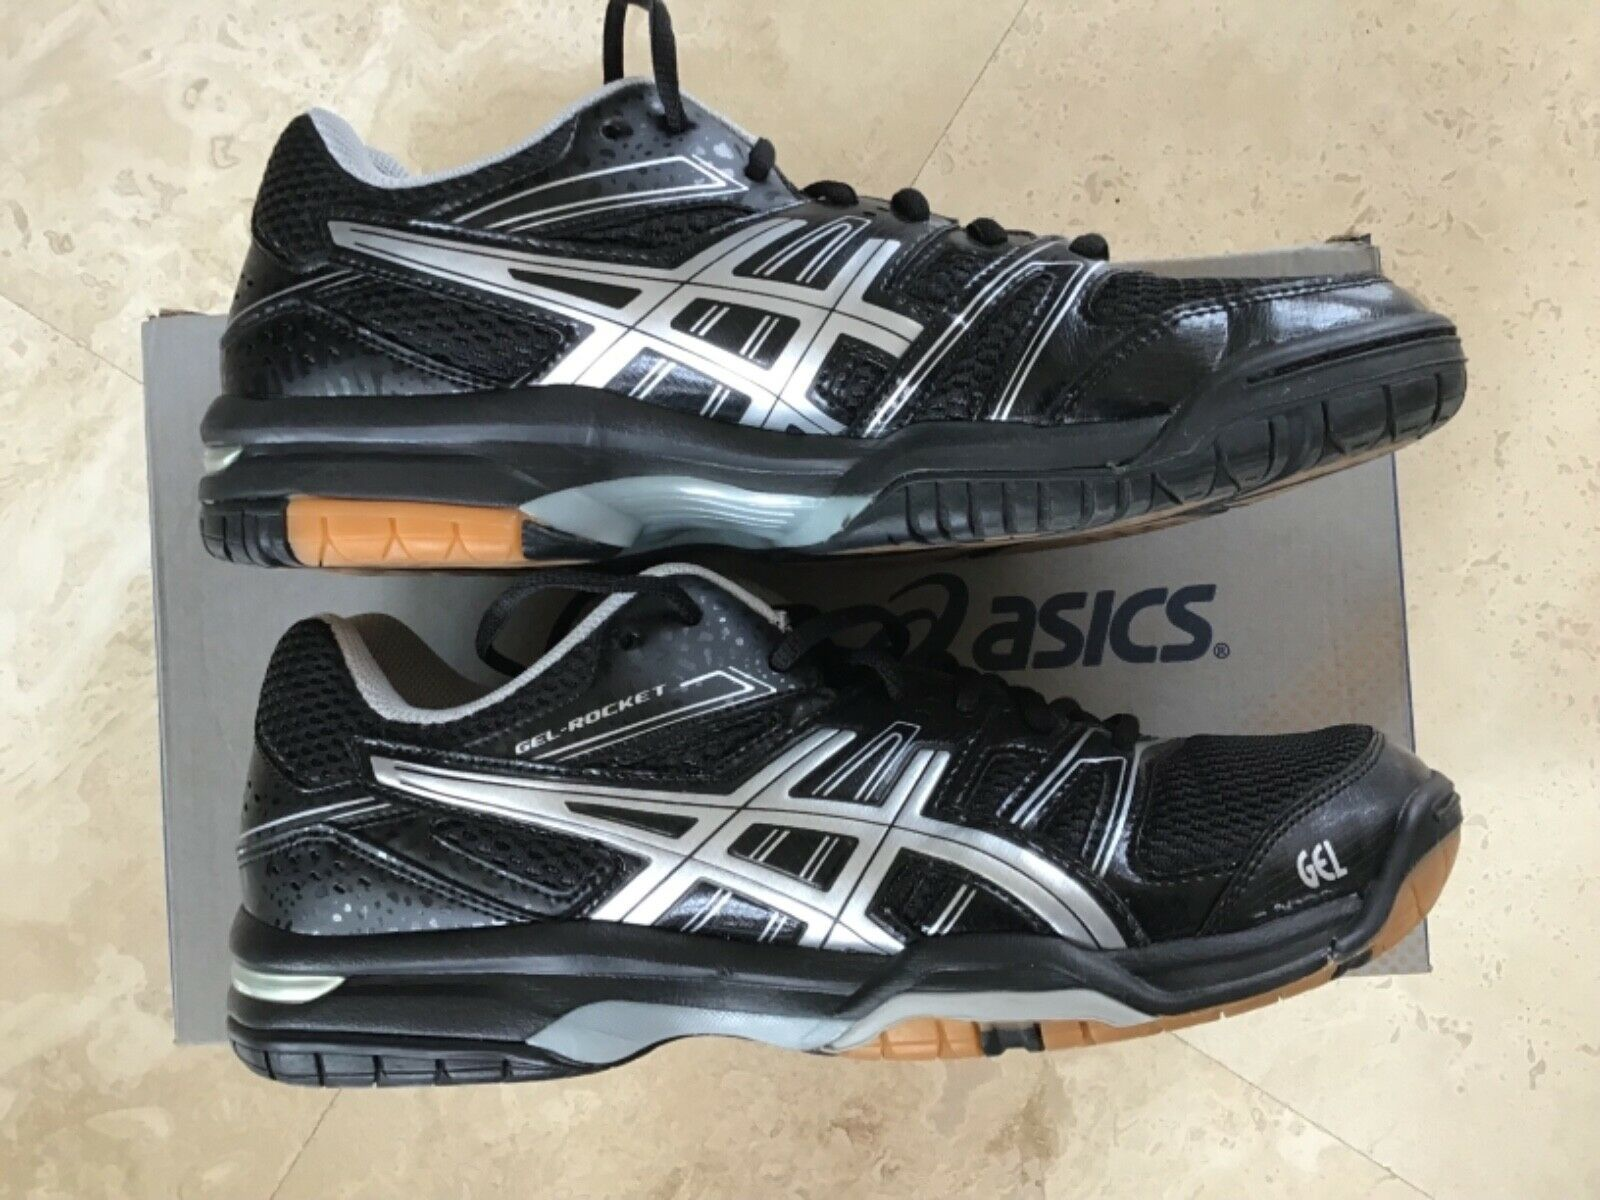 Asics Femme Cour chaussures voleyball Gel Rocket 7 Taille 10 B455N noir argent New in Box